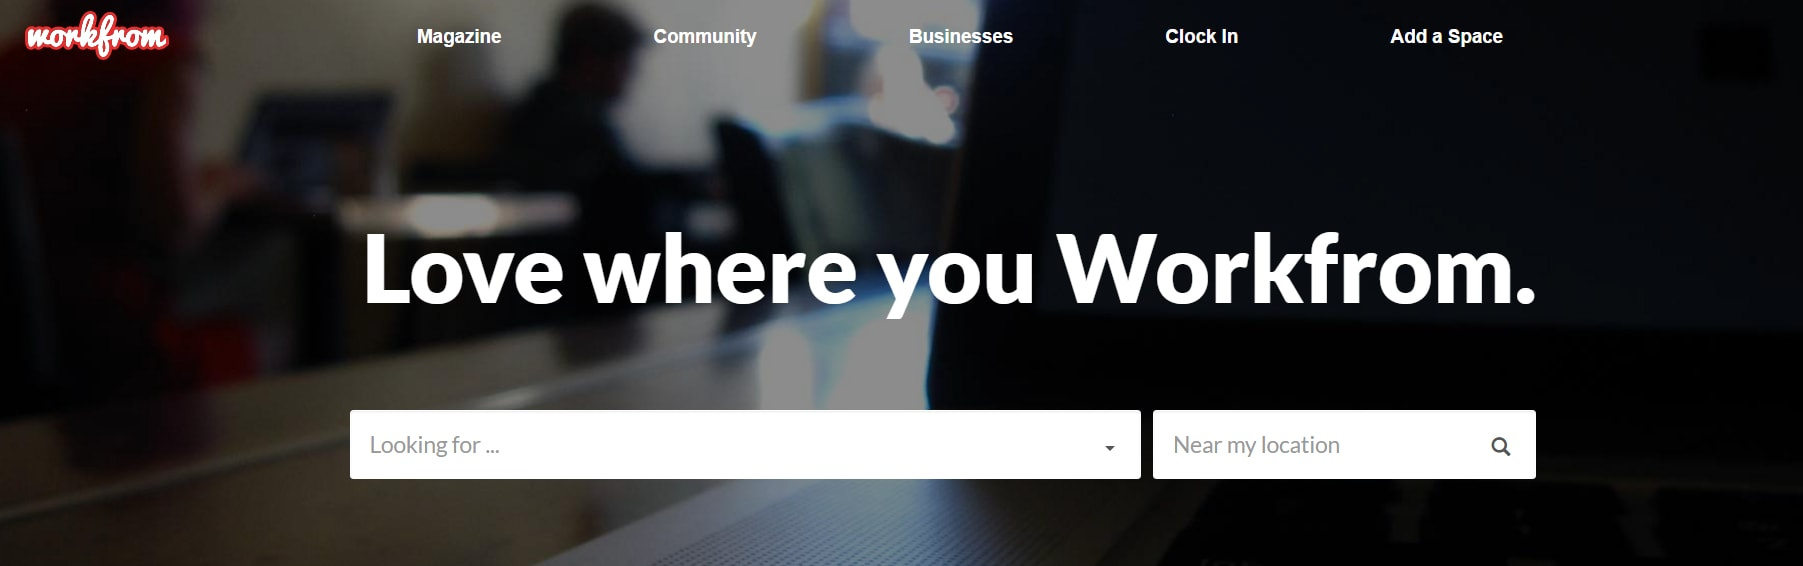 Workfrom - Coworking space directory